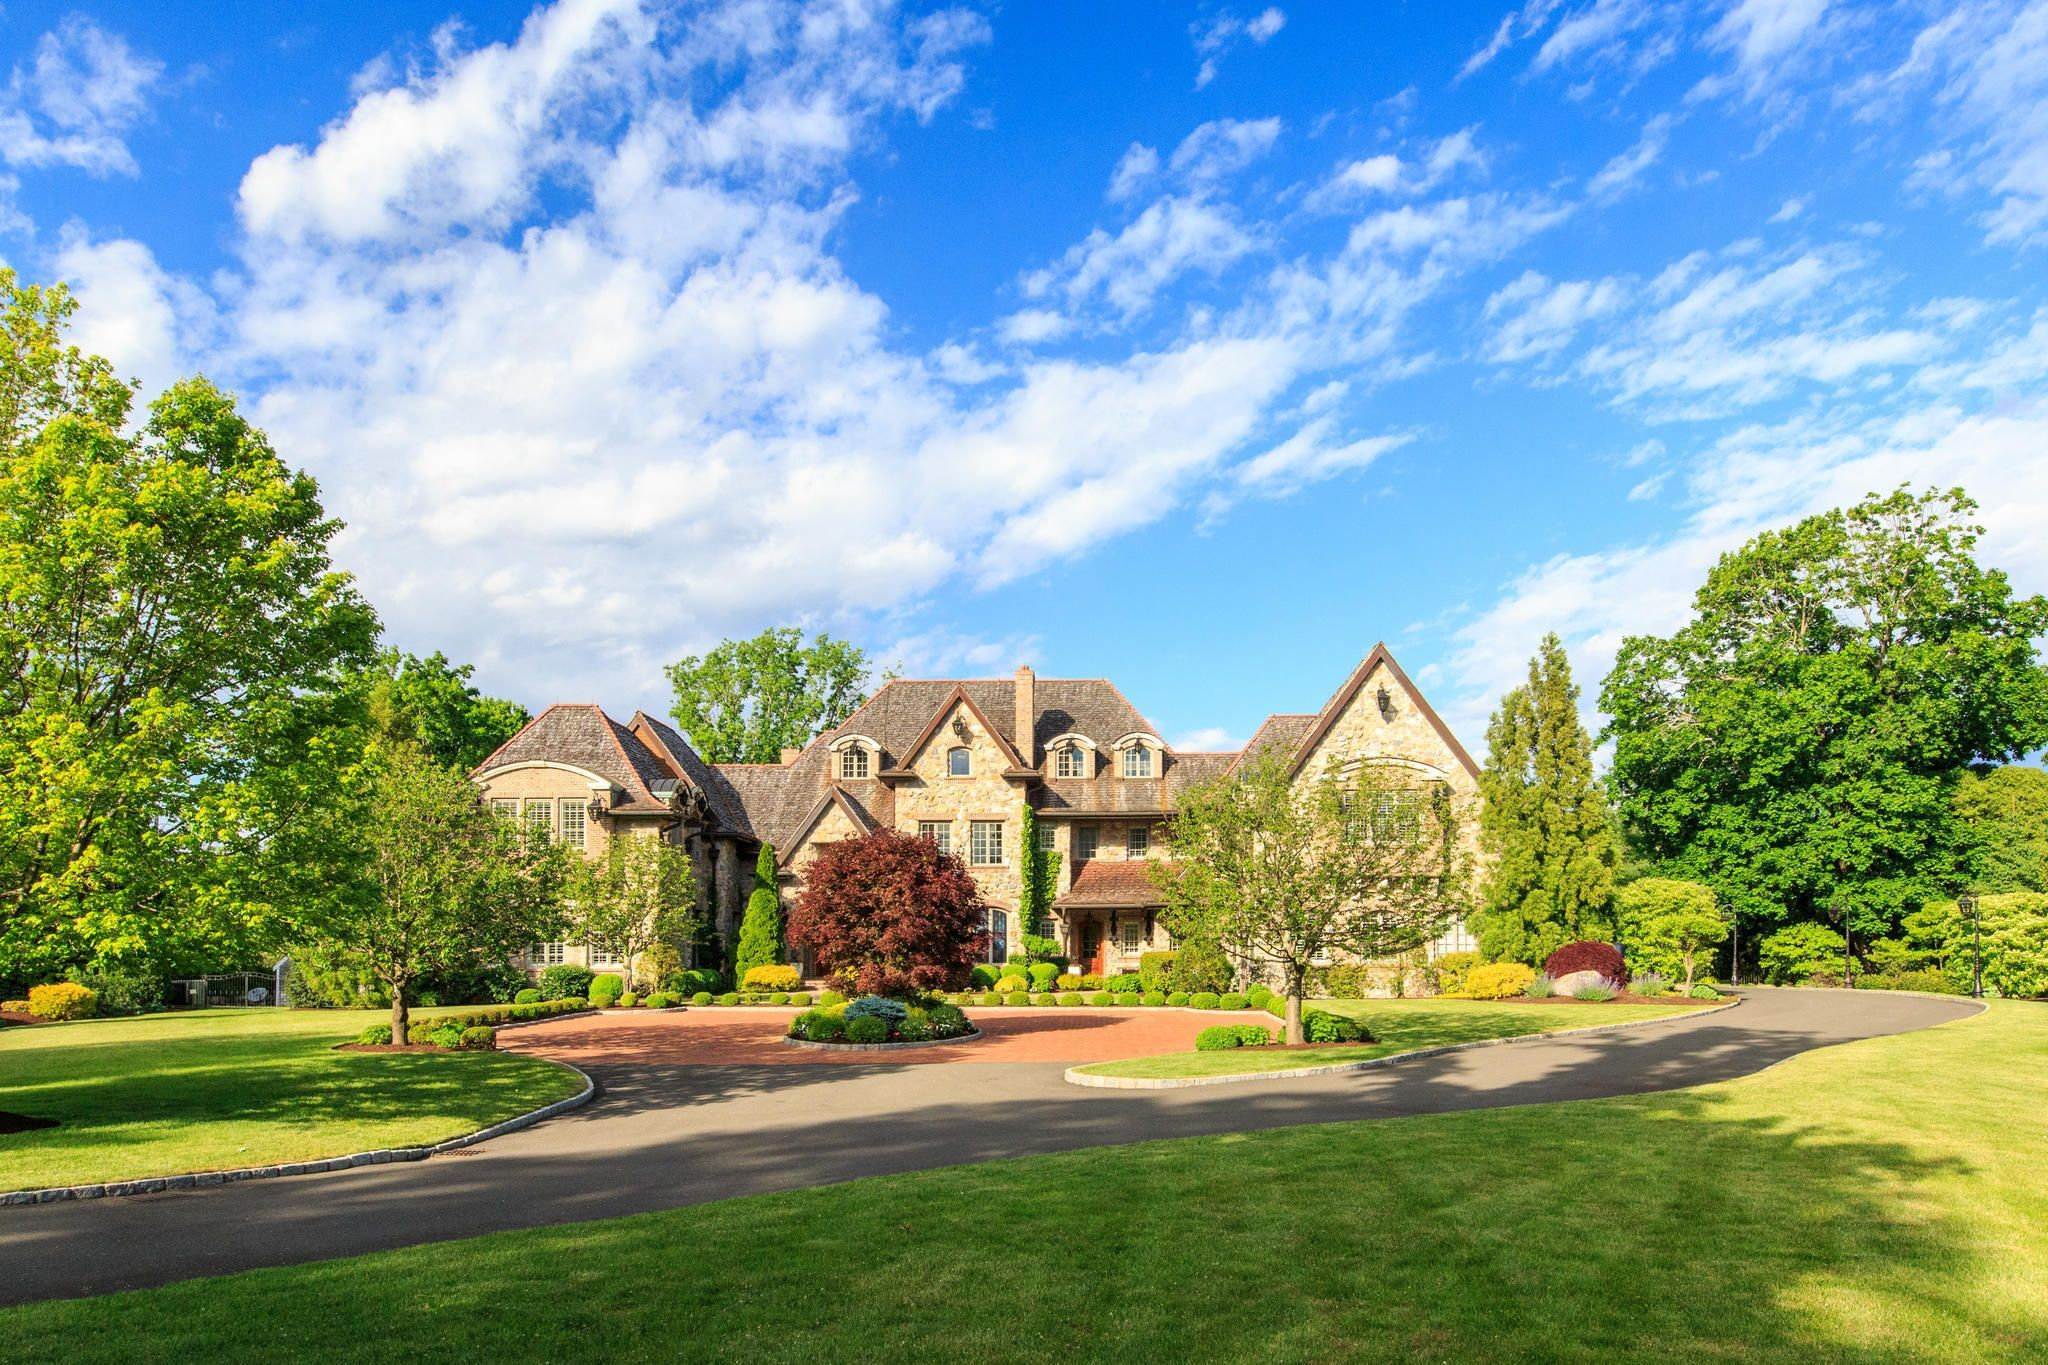 57 Rosebrook Road New Canaan, CT 06840 - Image 1